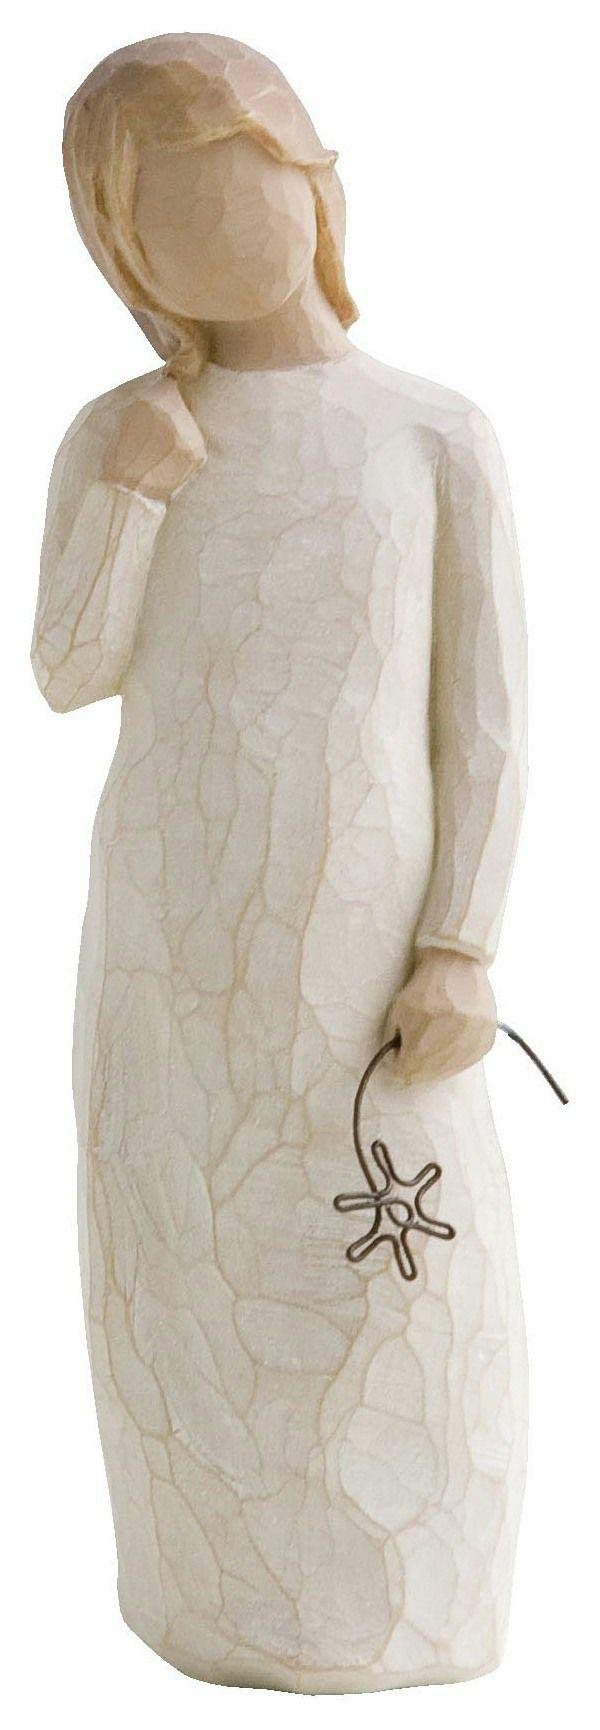 Willow Tree - Remember - Figurine lowest price